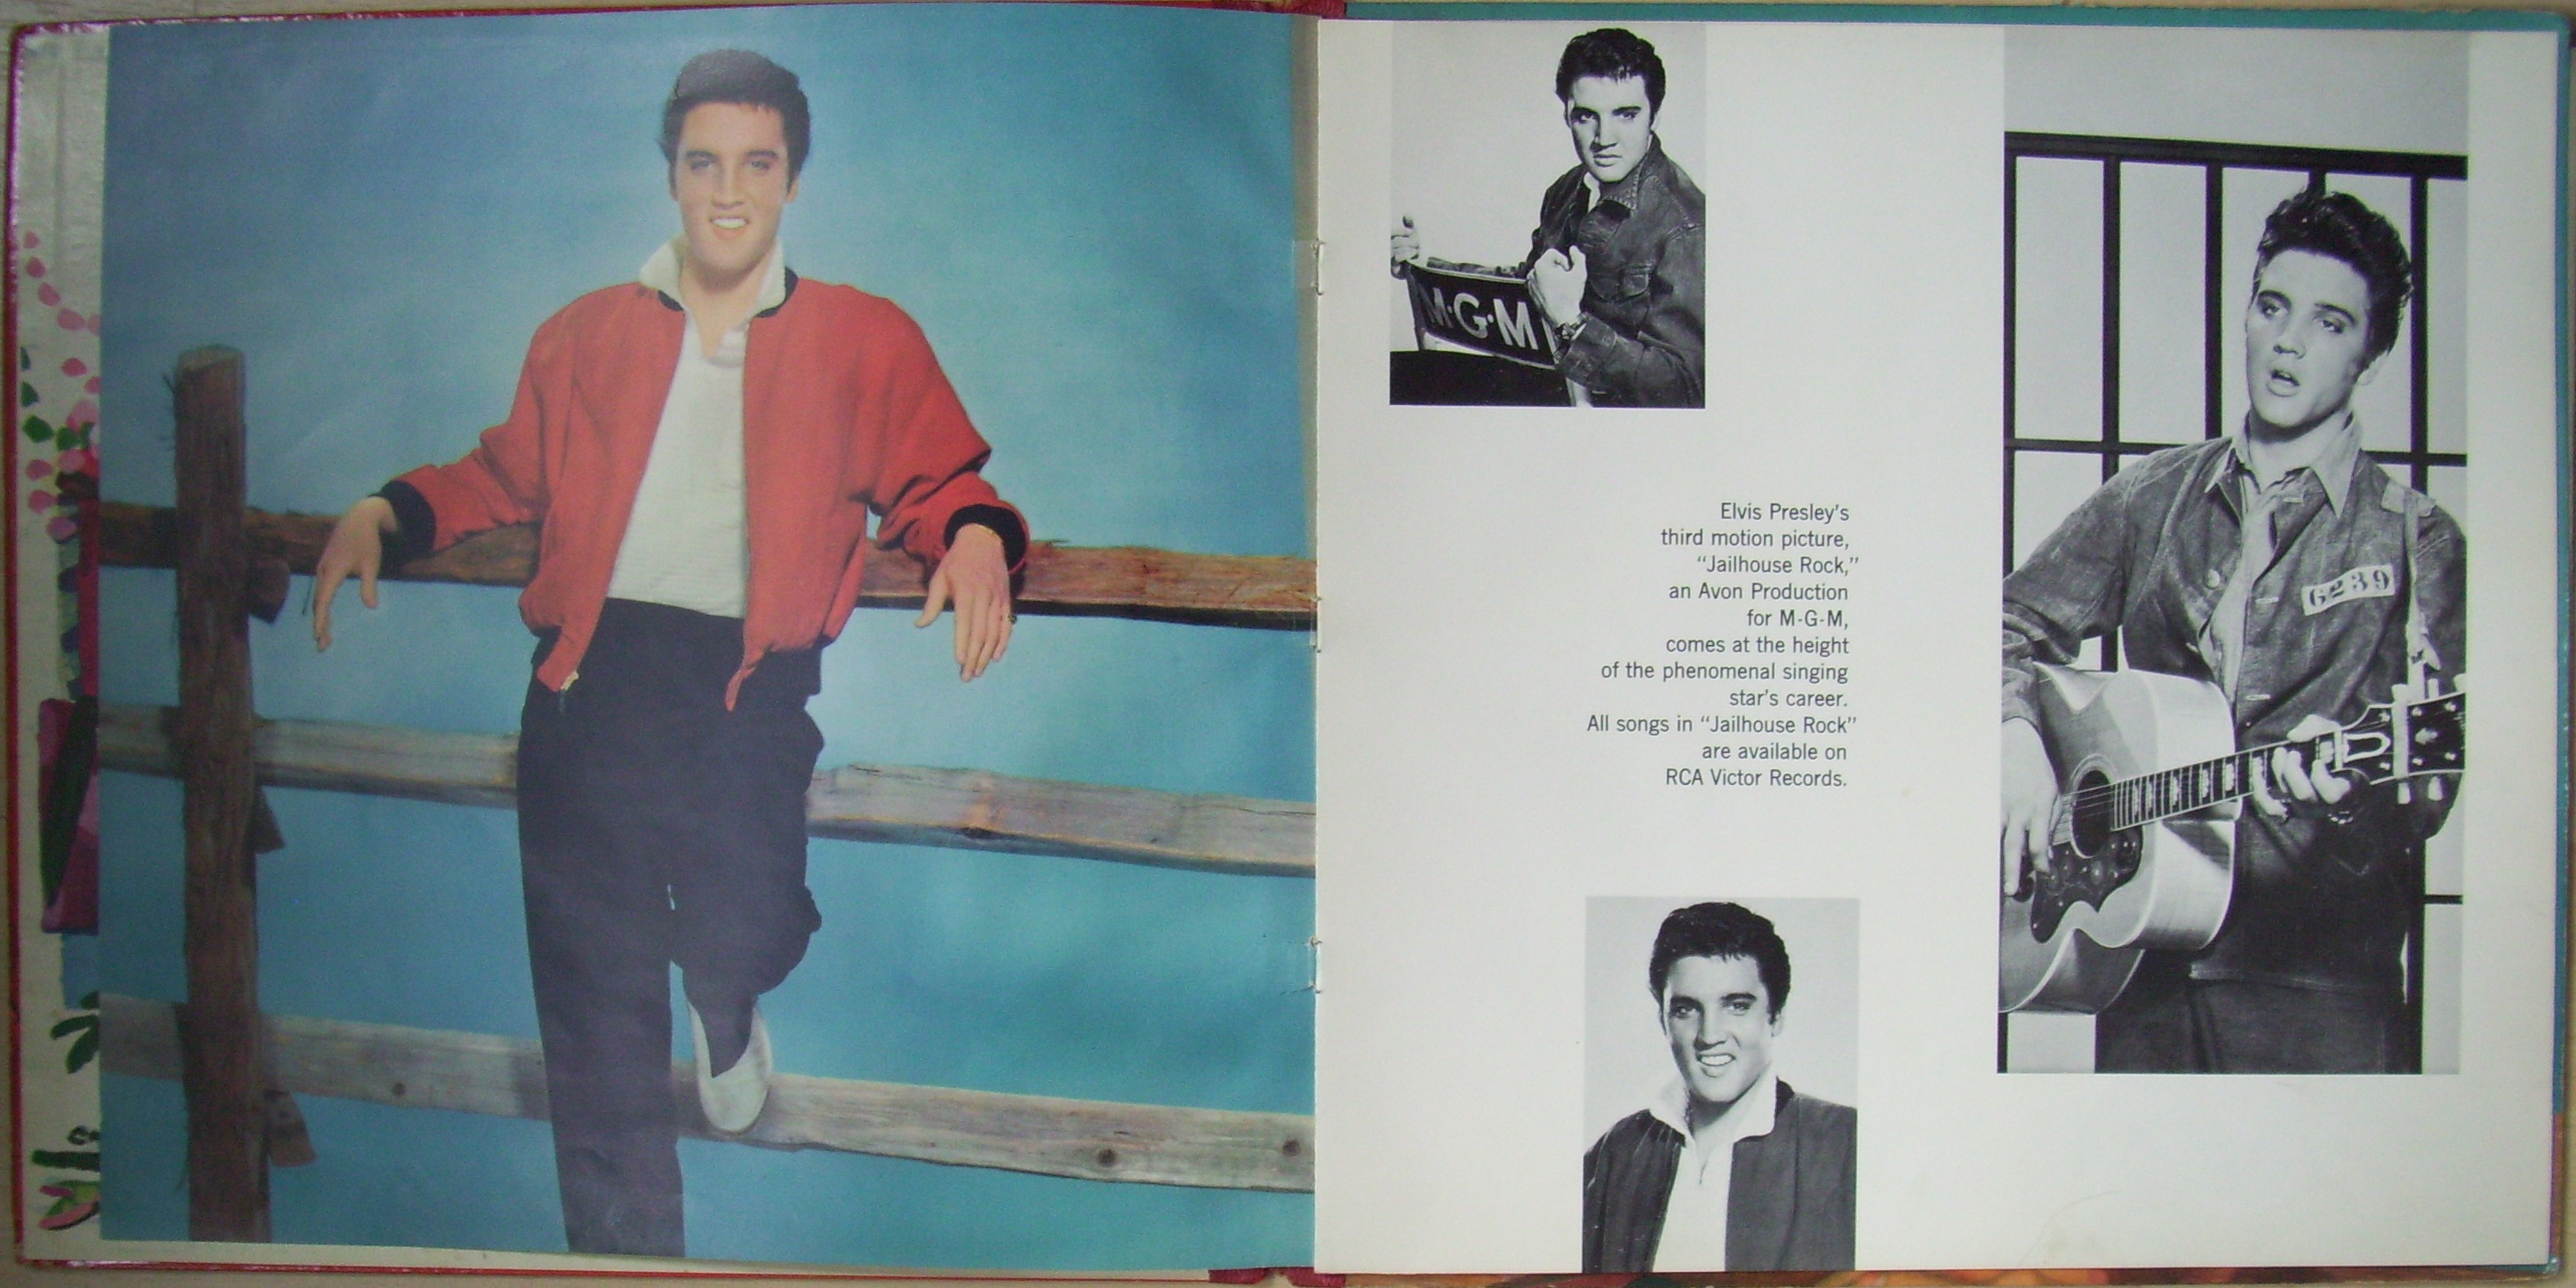 ELVIS' CHRISTMAS ALBUM 6xl8n229